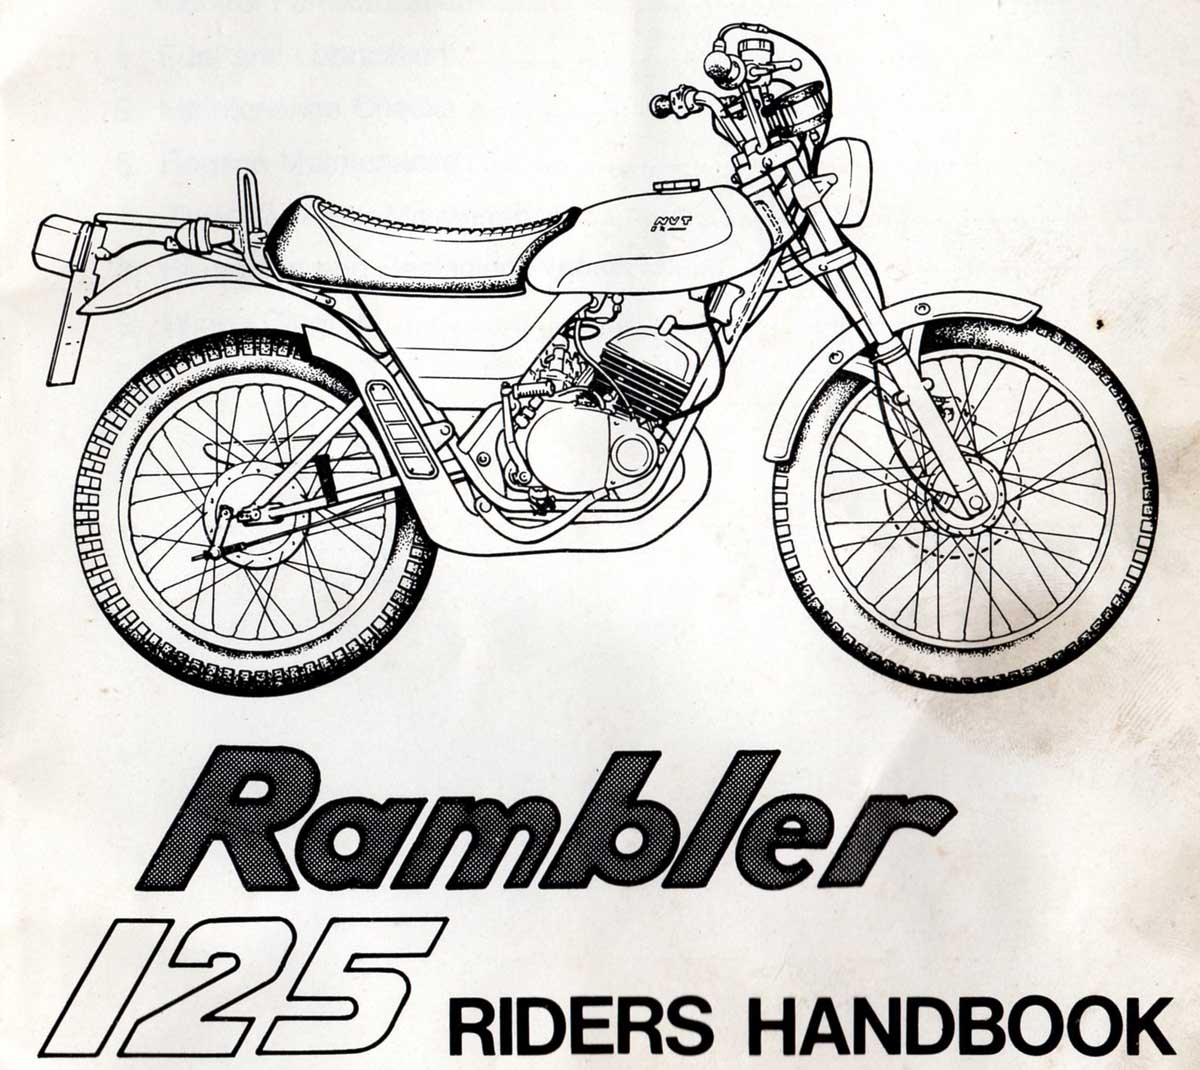 Wiring Diagram For A 1979 Yamaha Dt 125 Library 175 Nvt Riders Handbook